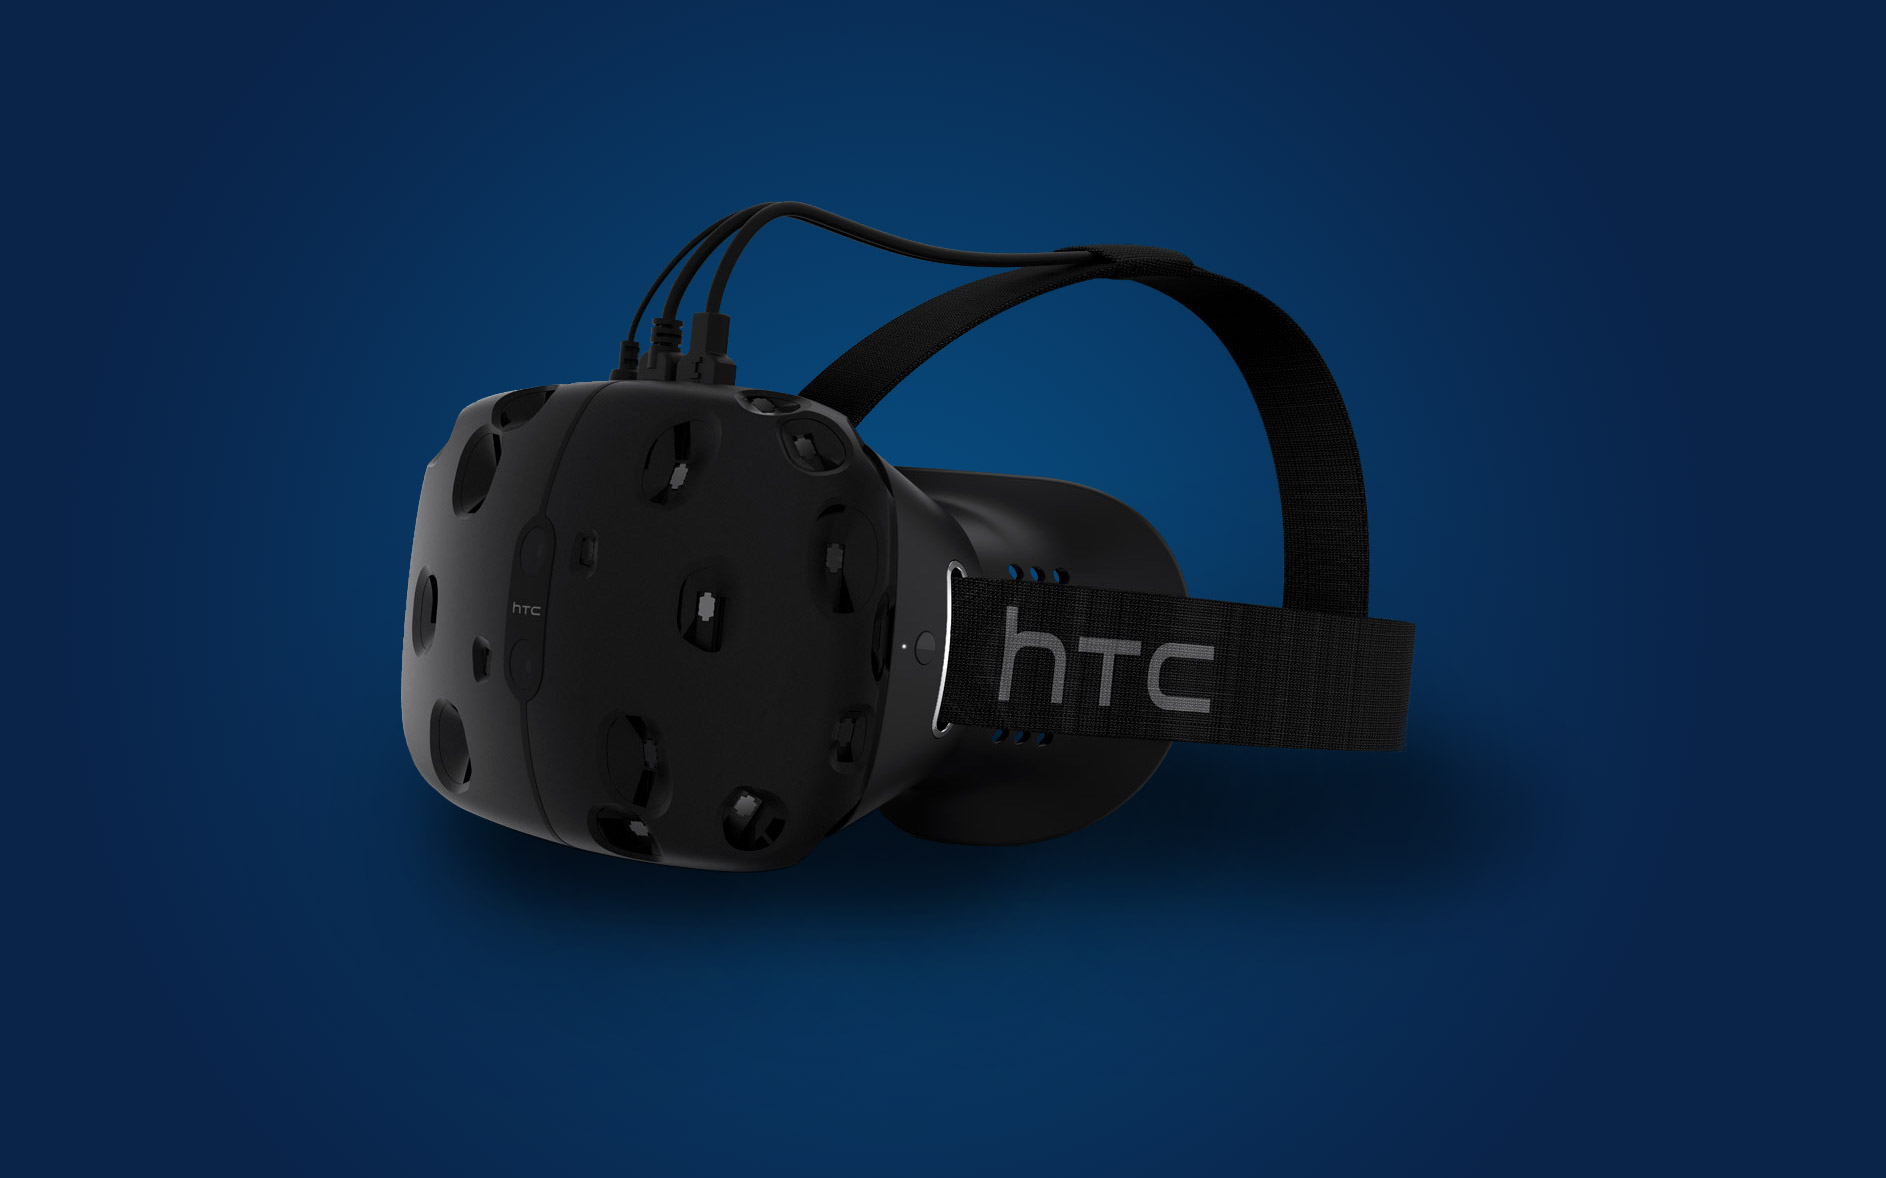 http://www.roadtovr.com/wp-content/uploads/2015/03/htc-vive-steamvr-featured.jpg